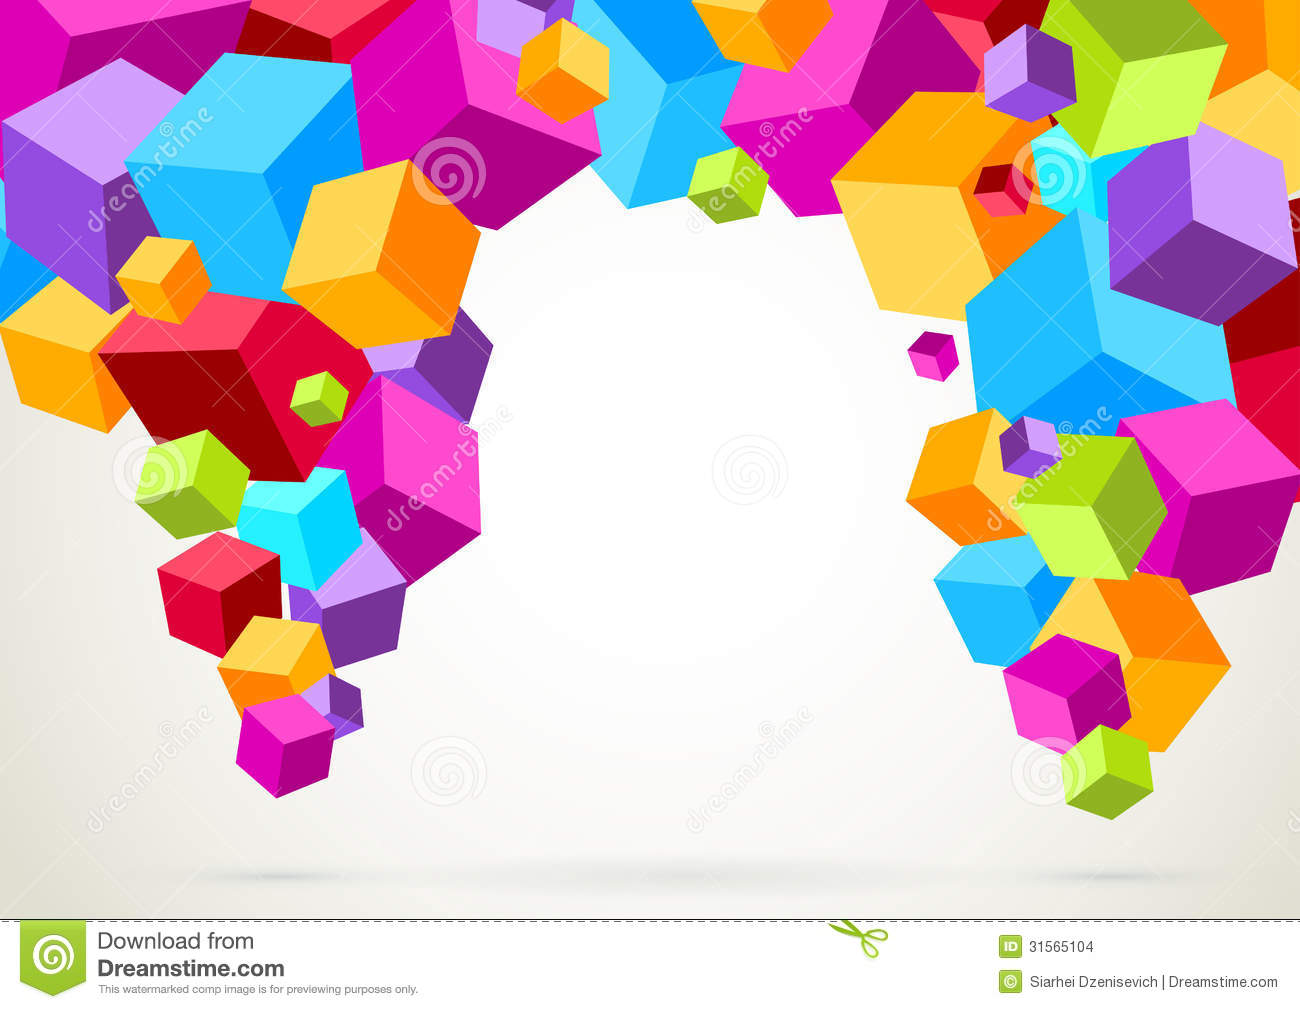 Bright and colorful clipart.